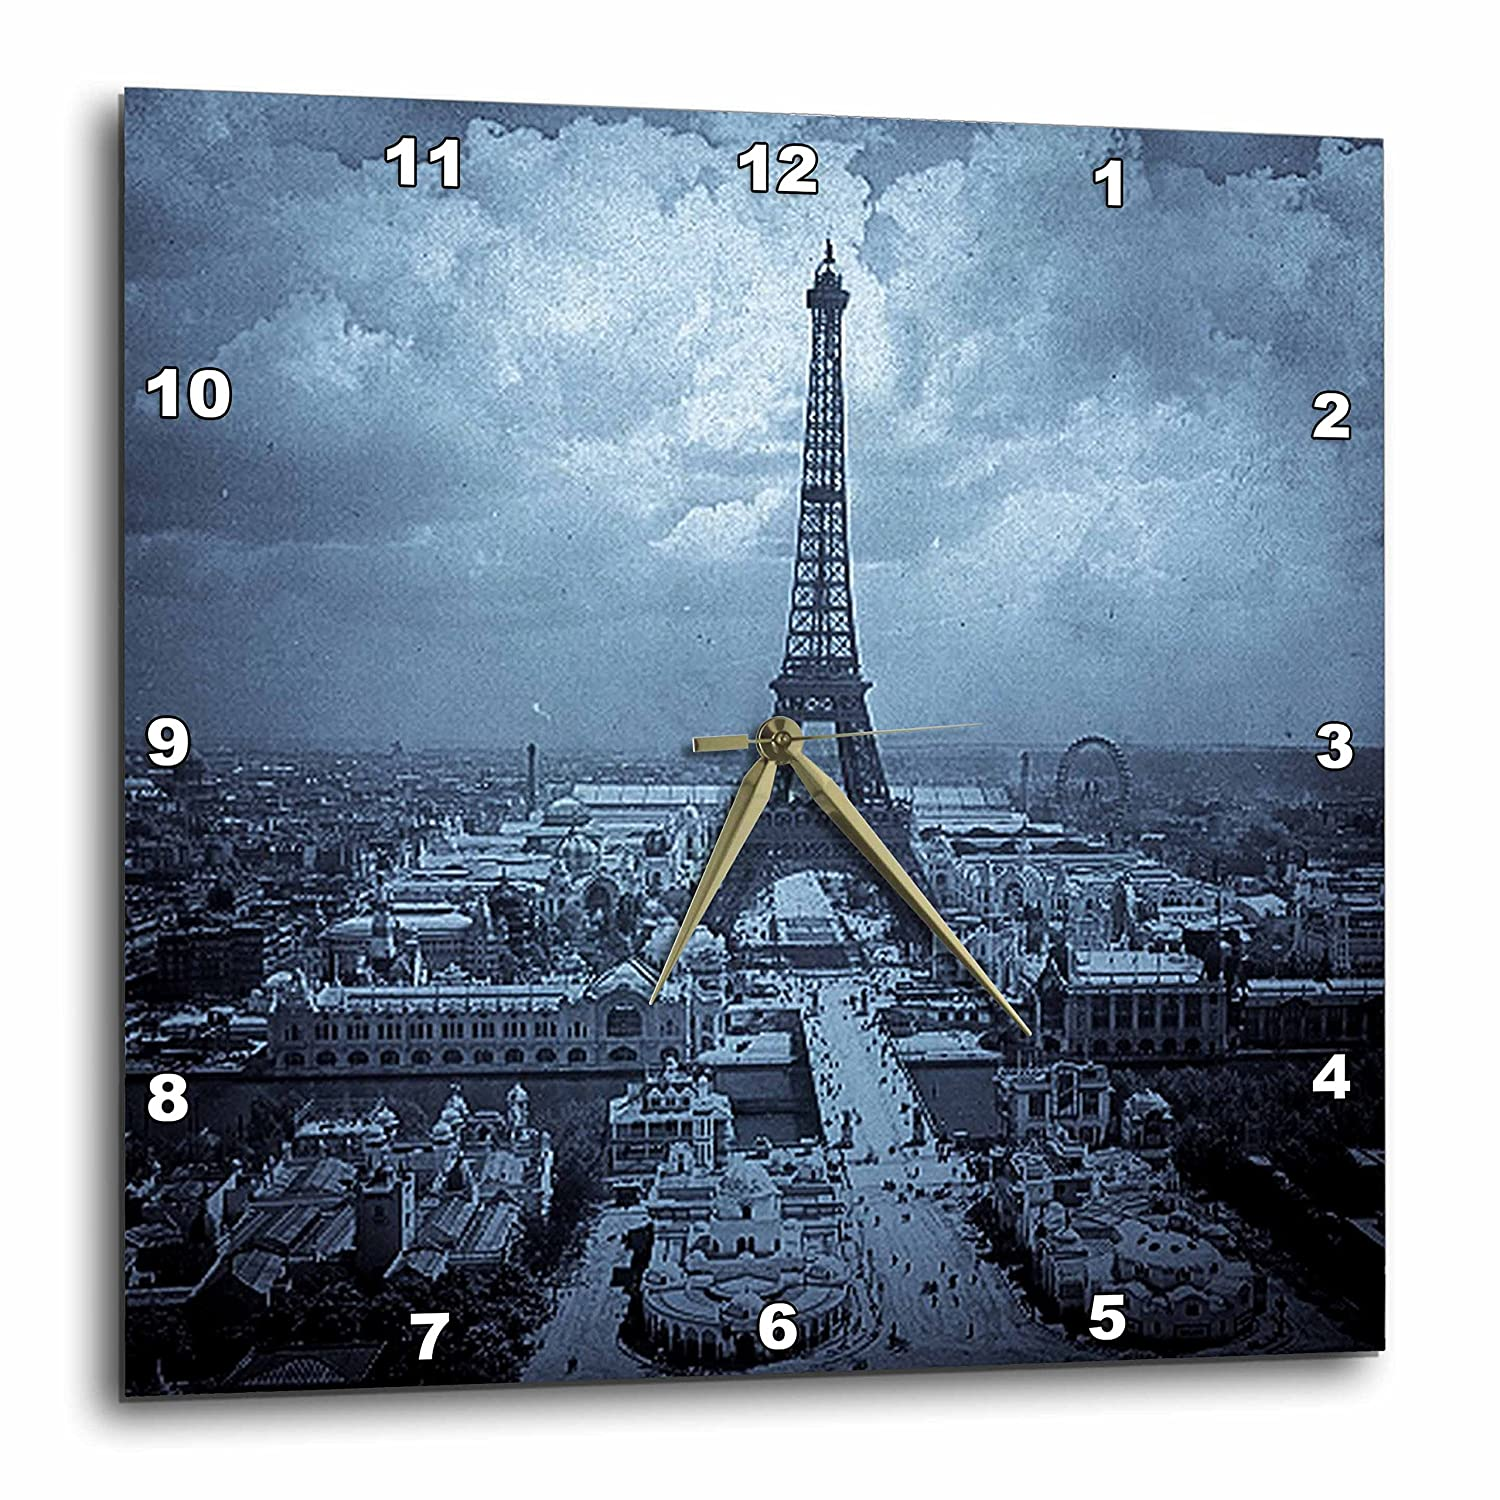 13 by 13-Inch 3dRose dpp/_77455/_2 The Paris Exposition 1900 Eiffel Tower Cyan Tone Wall Clock